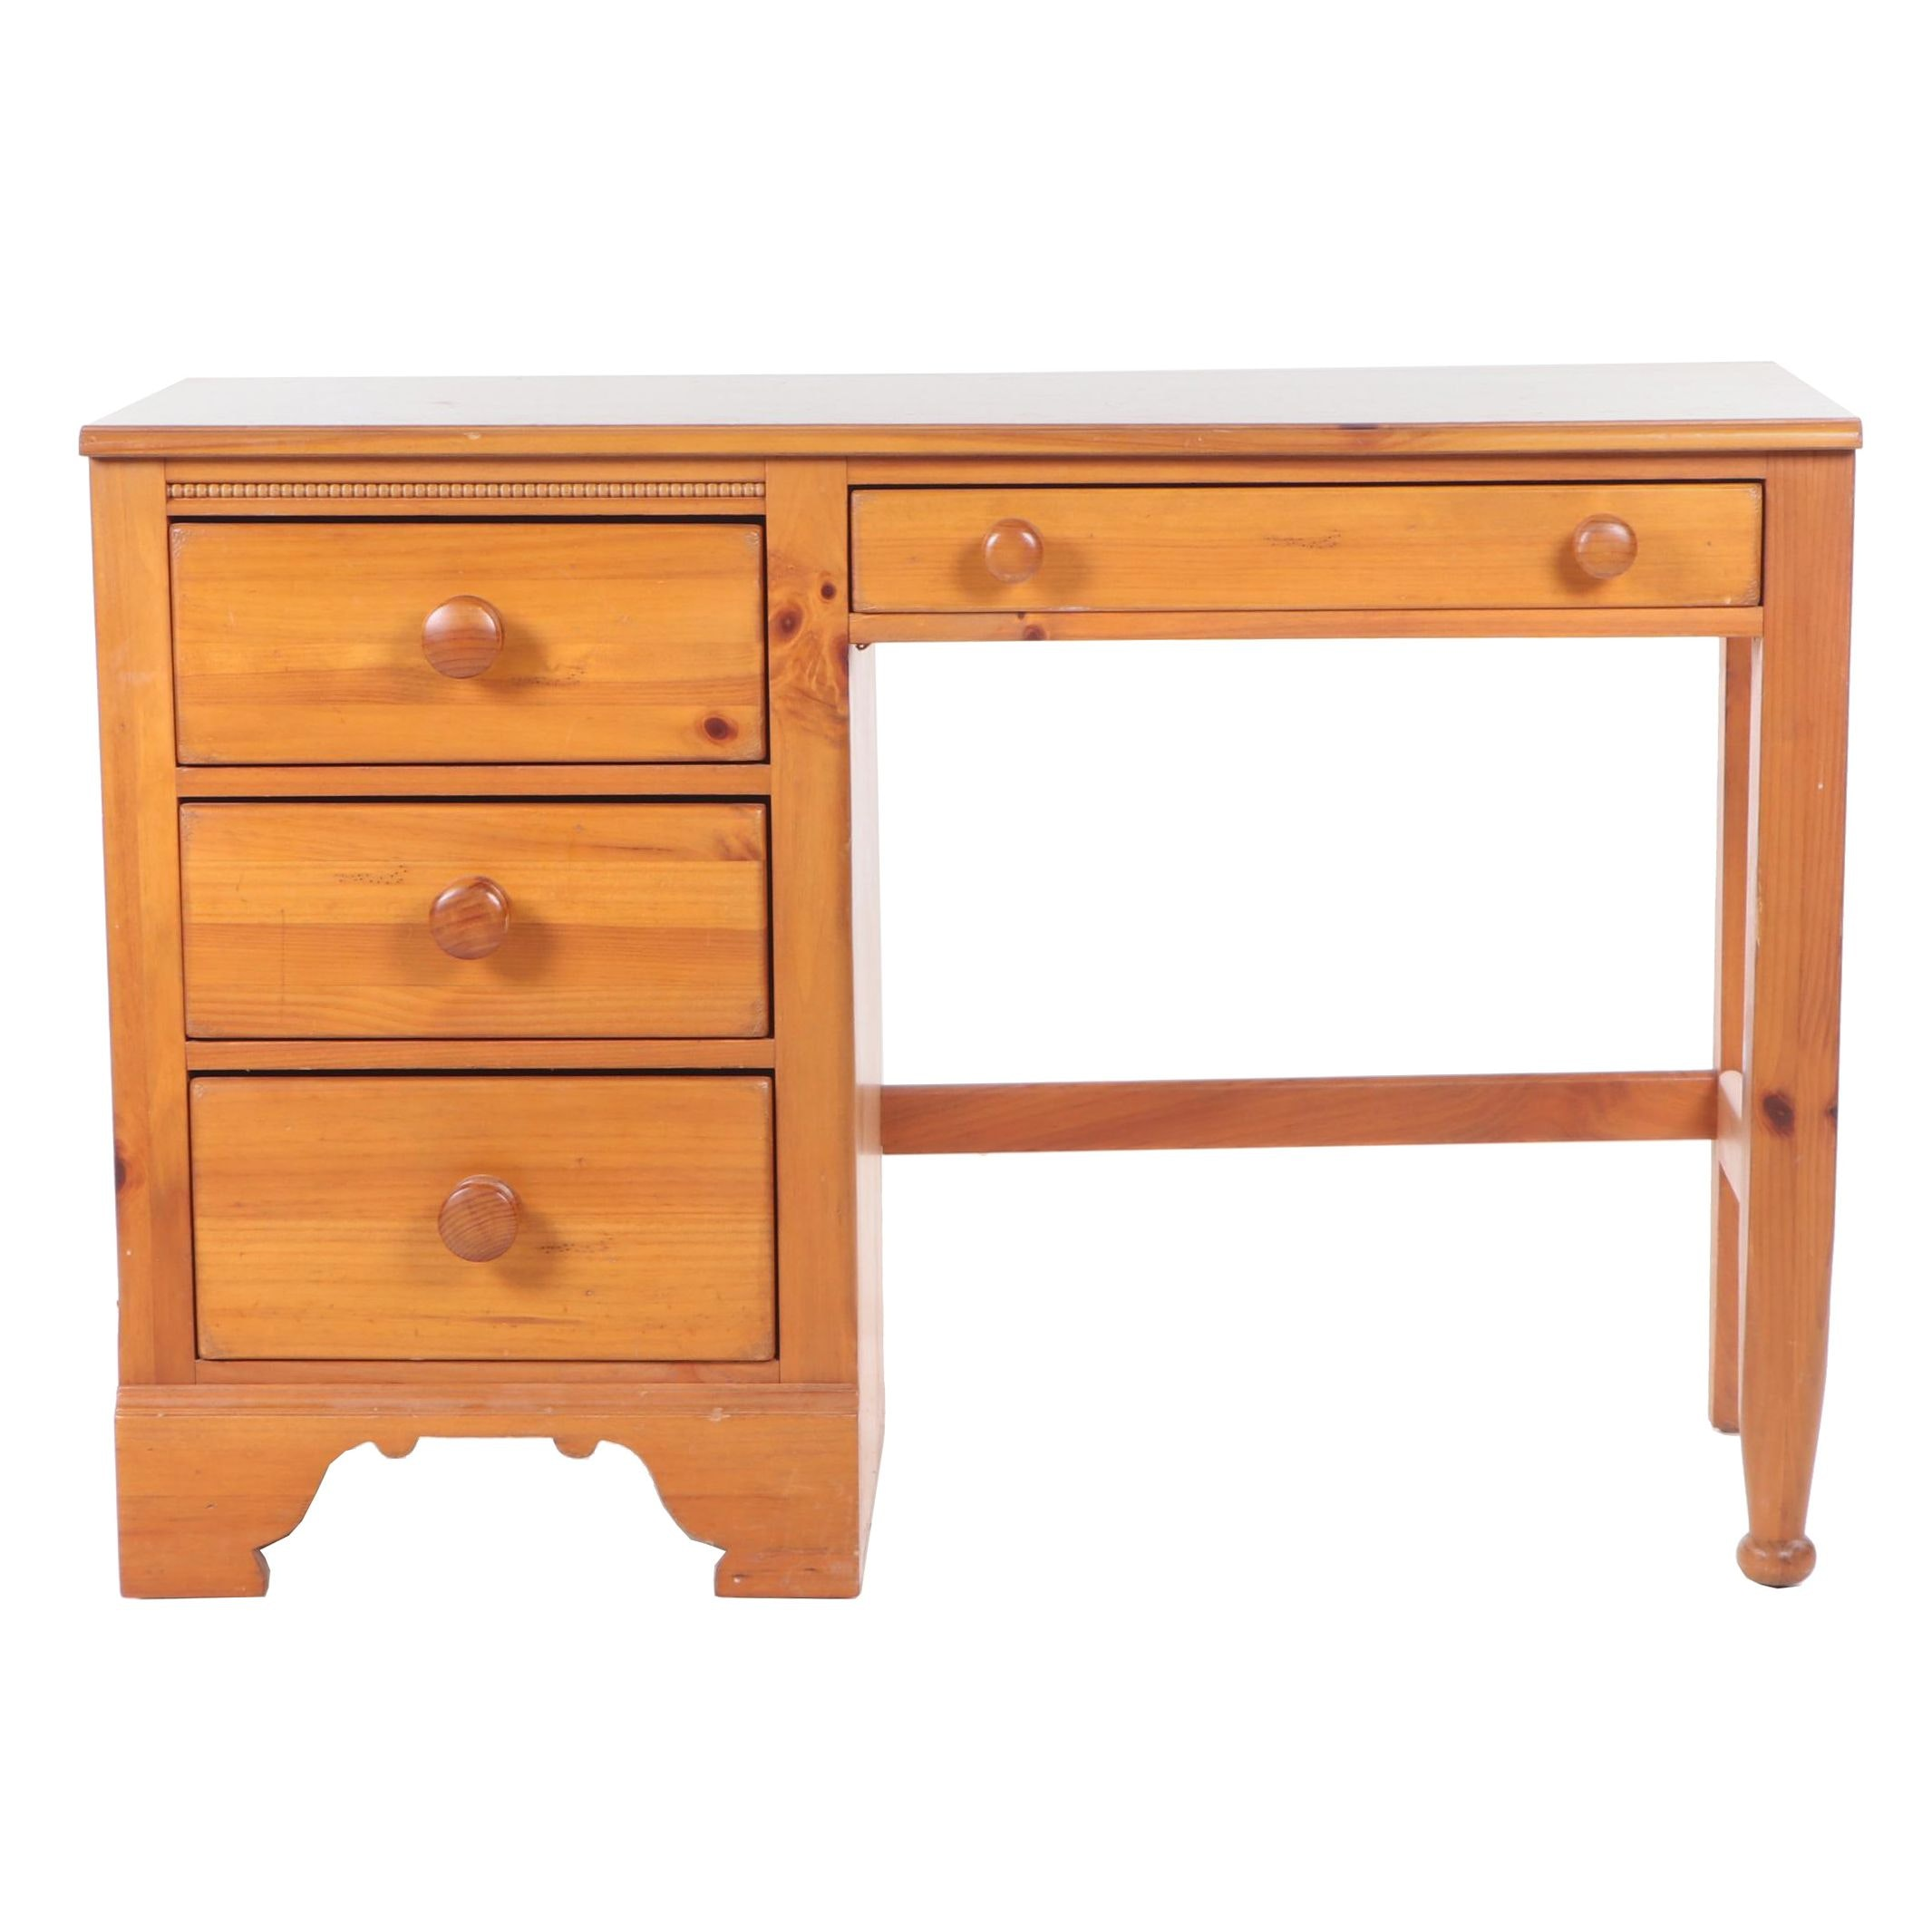 Lexington Pine Kneehole Desk with Side Chair, Contemporary